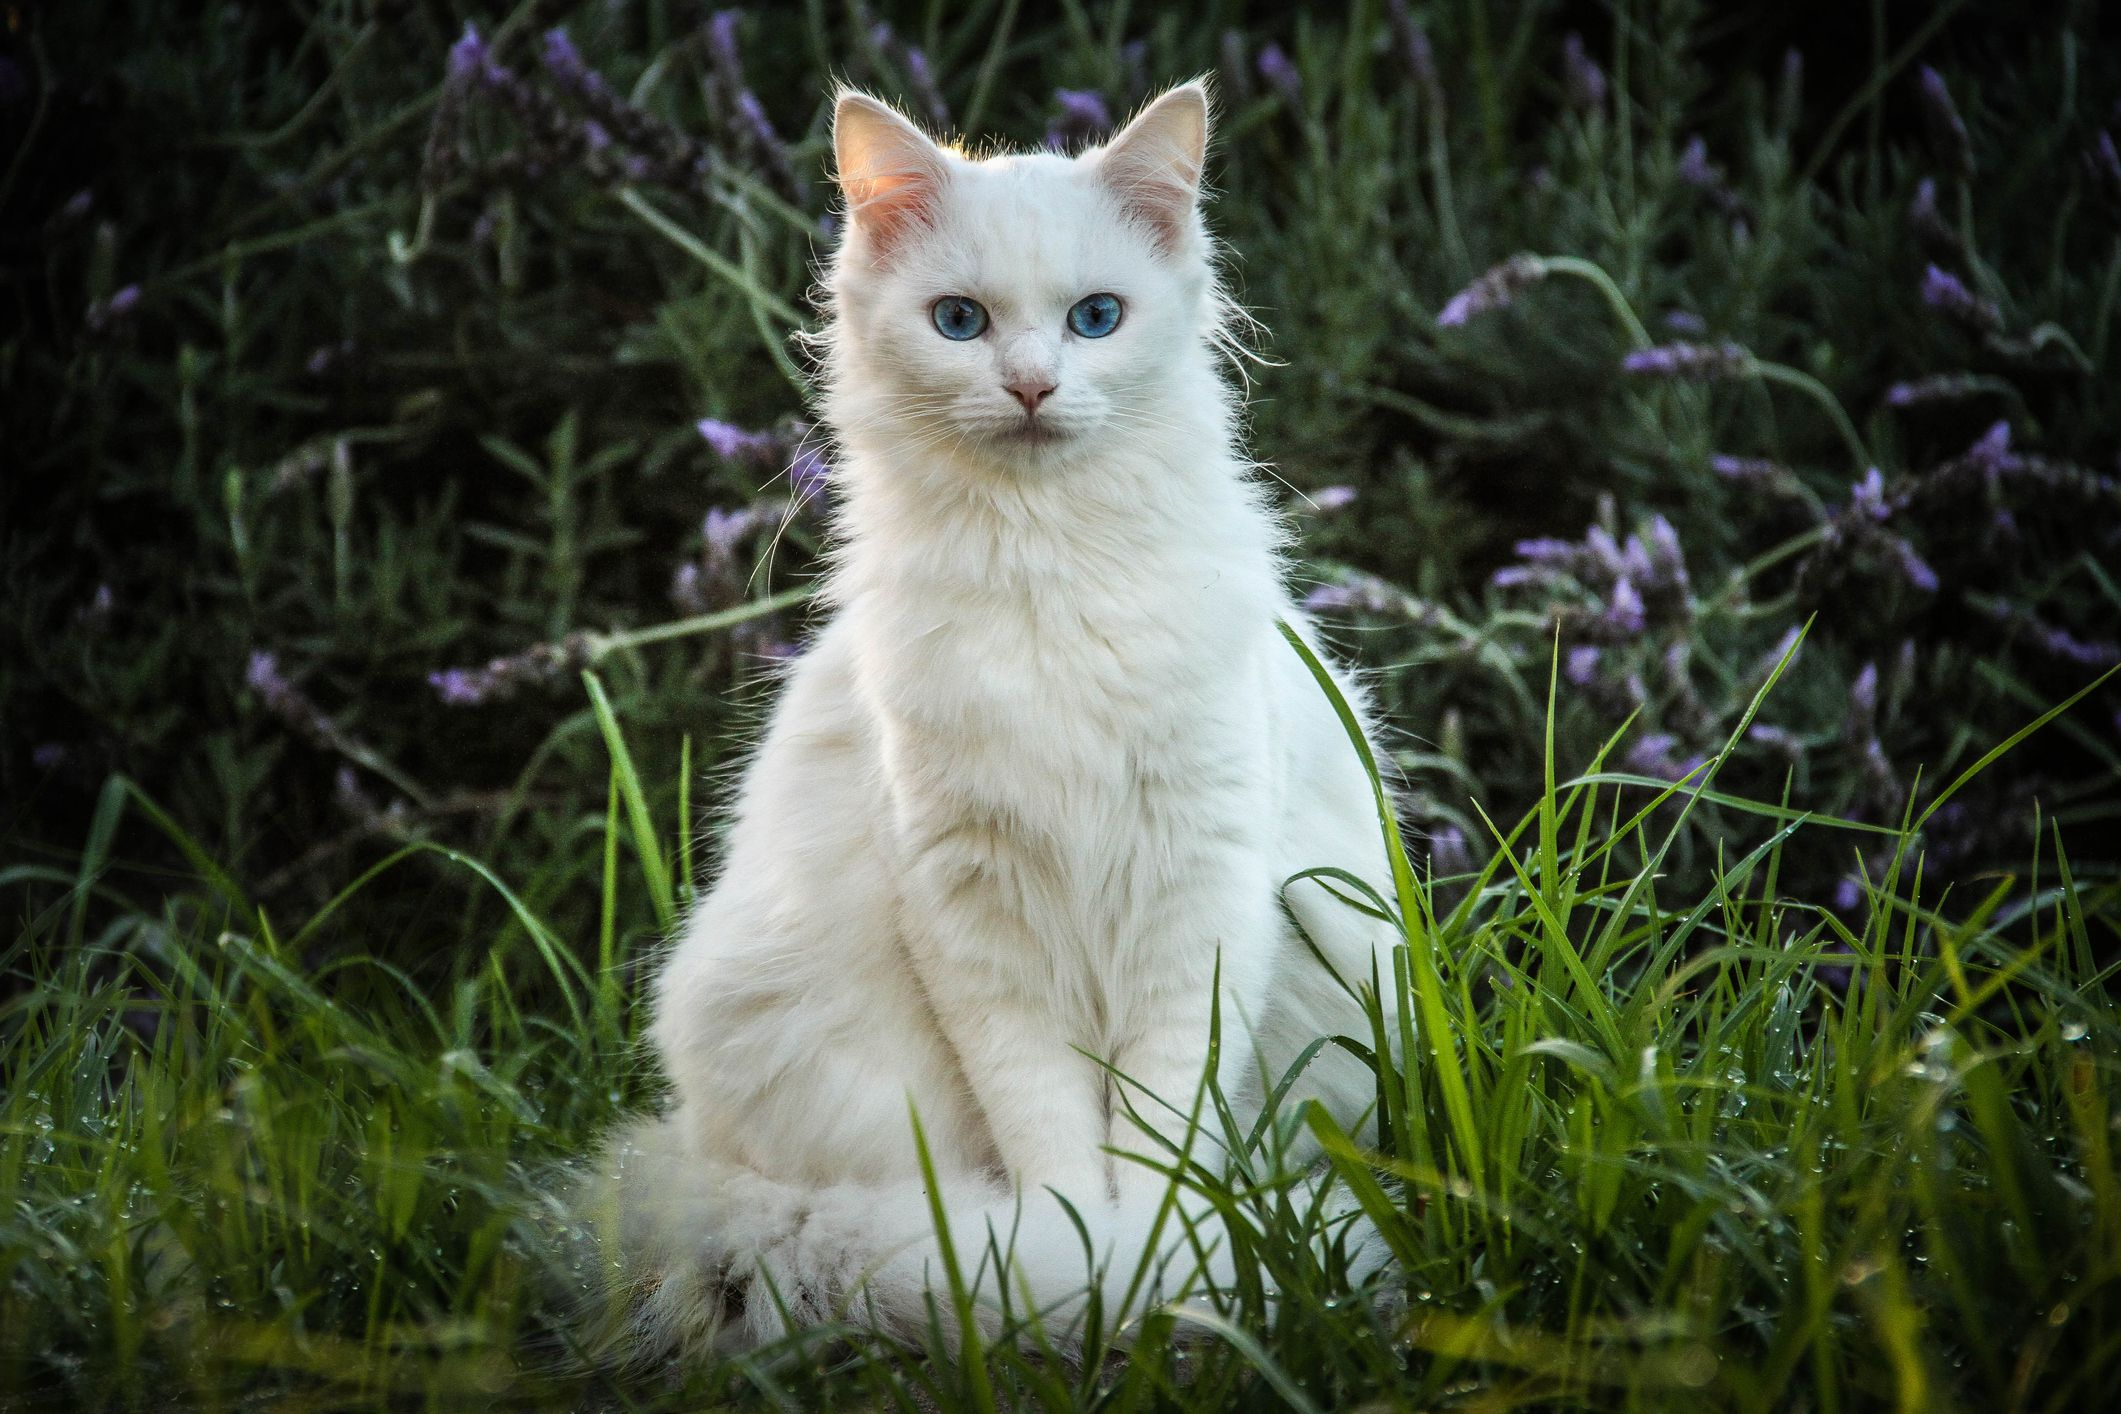 White Cats Features and Health Issues